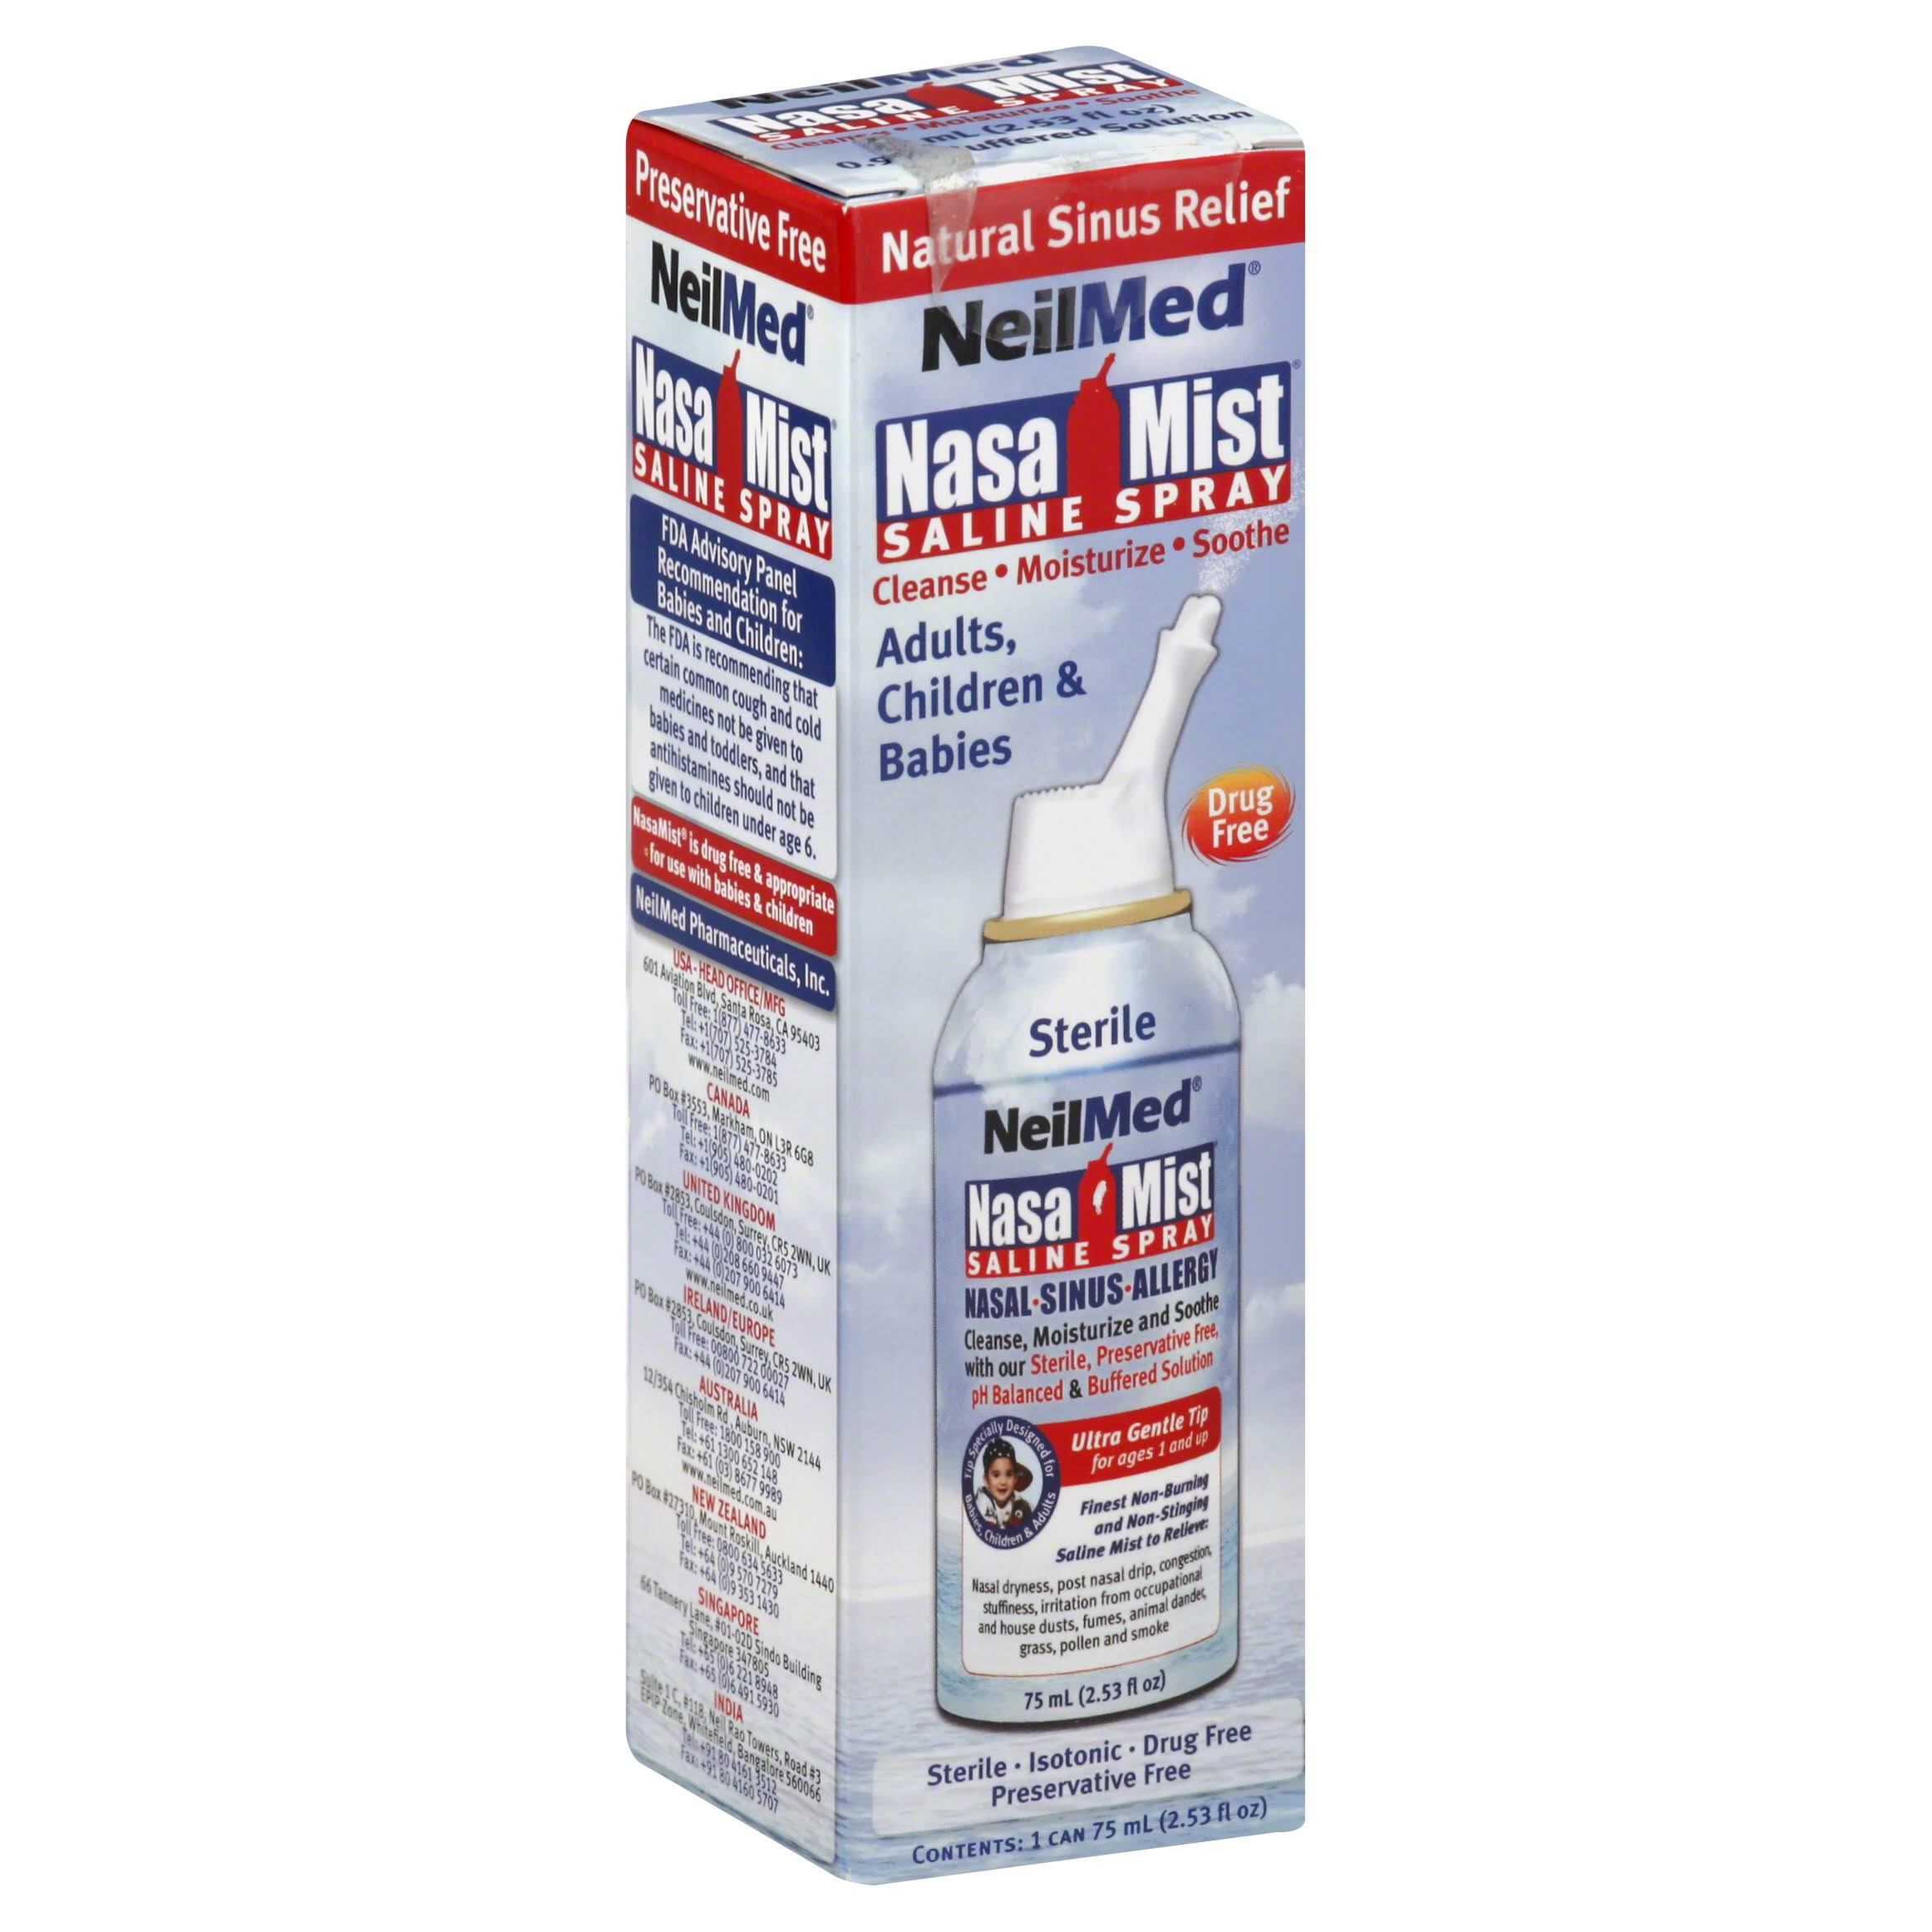 NeilMed Nasamist Saline Spray - 75ml